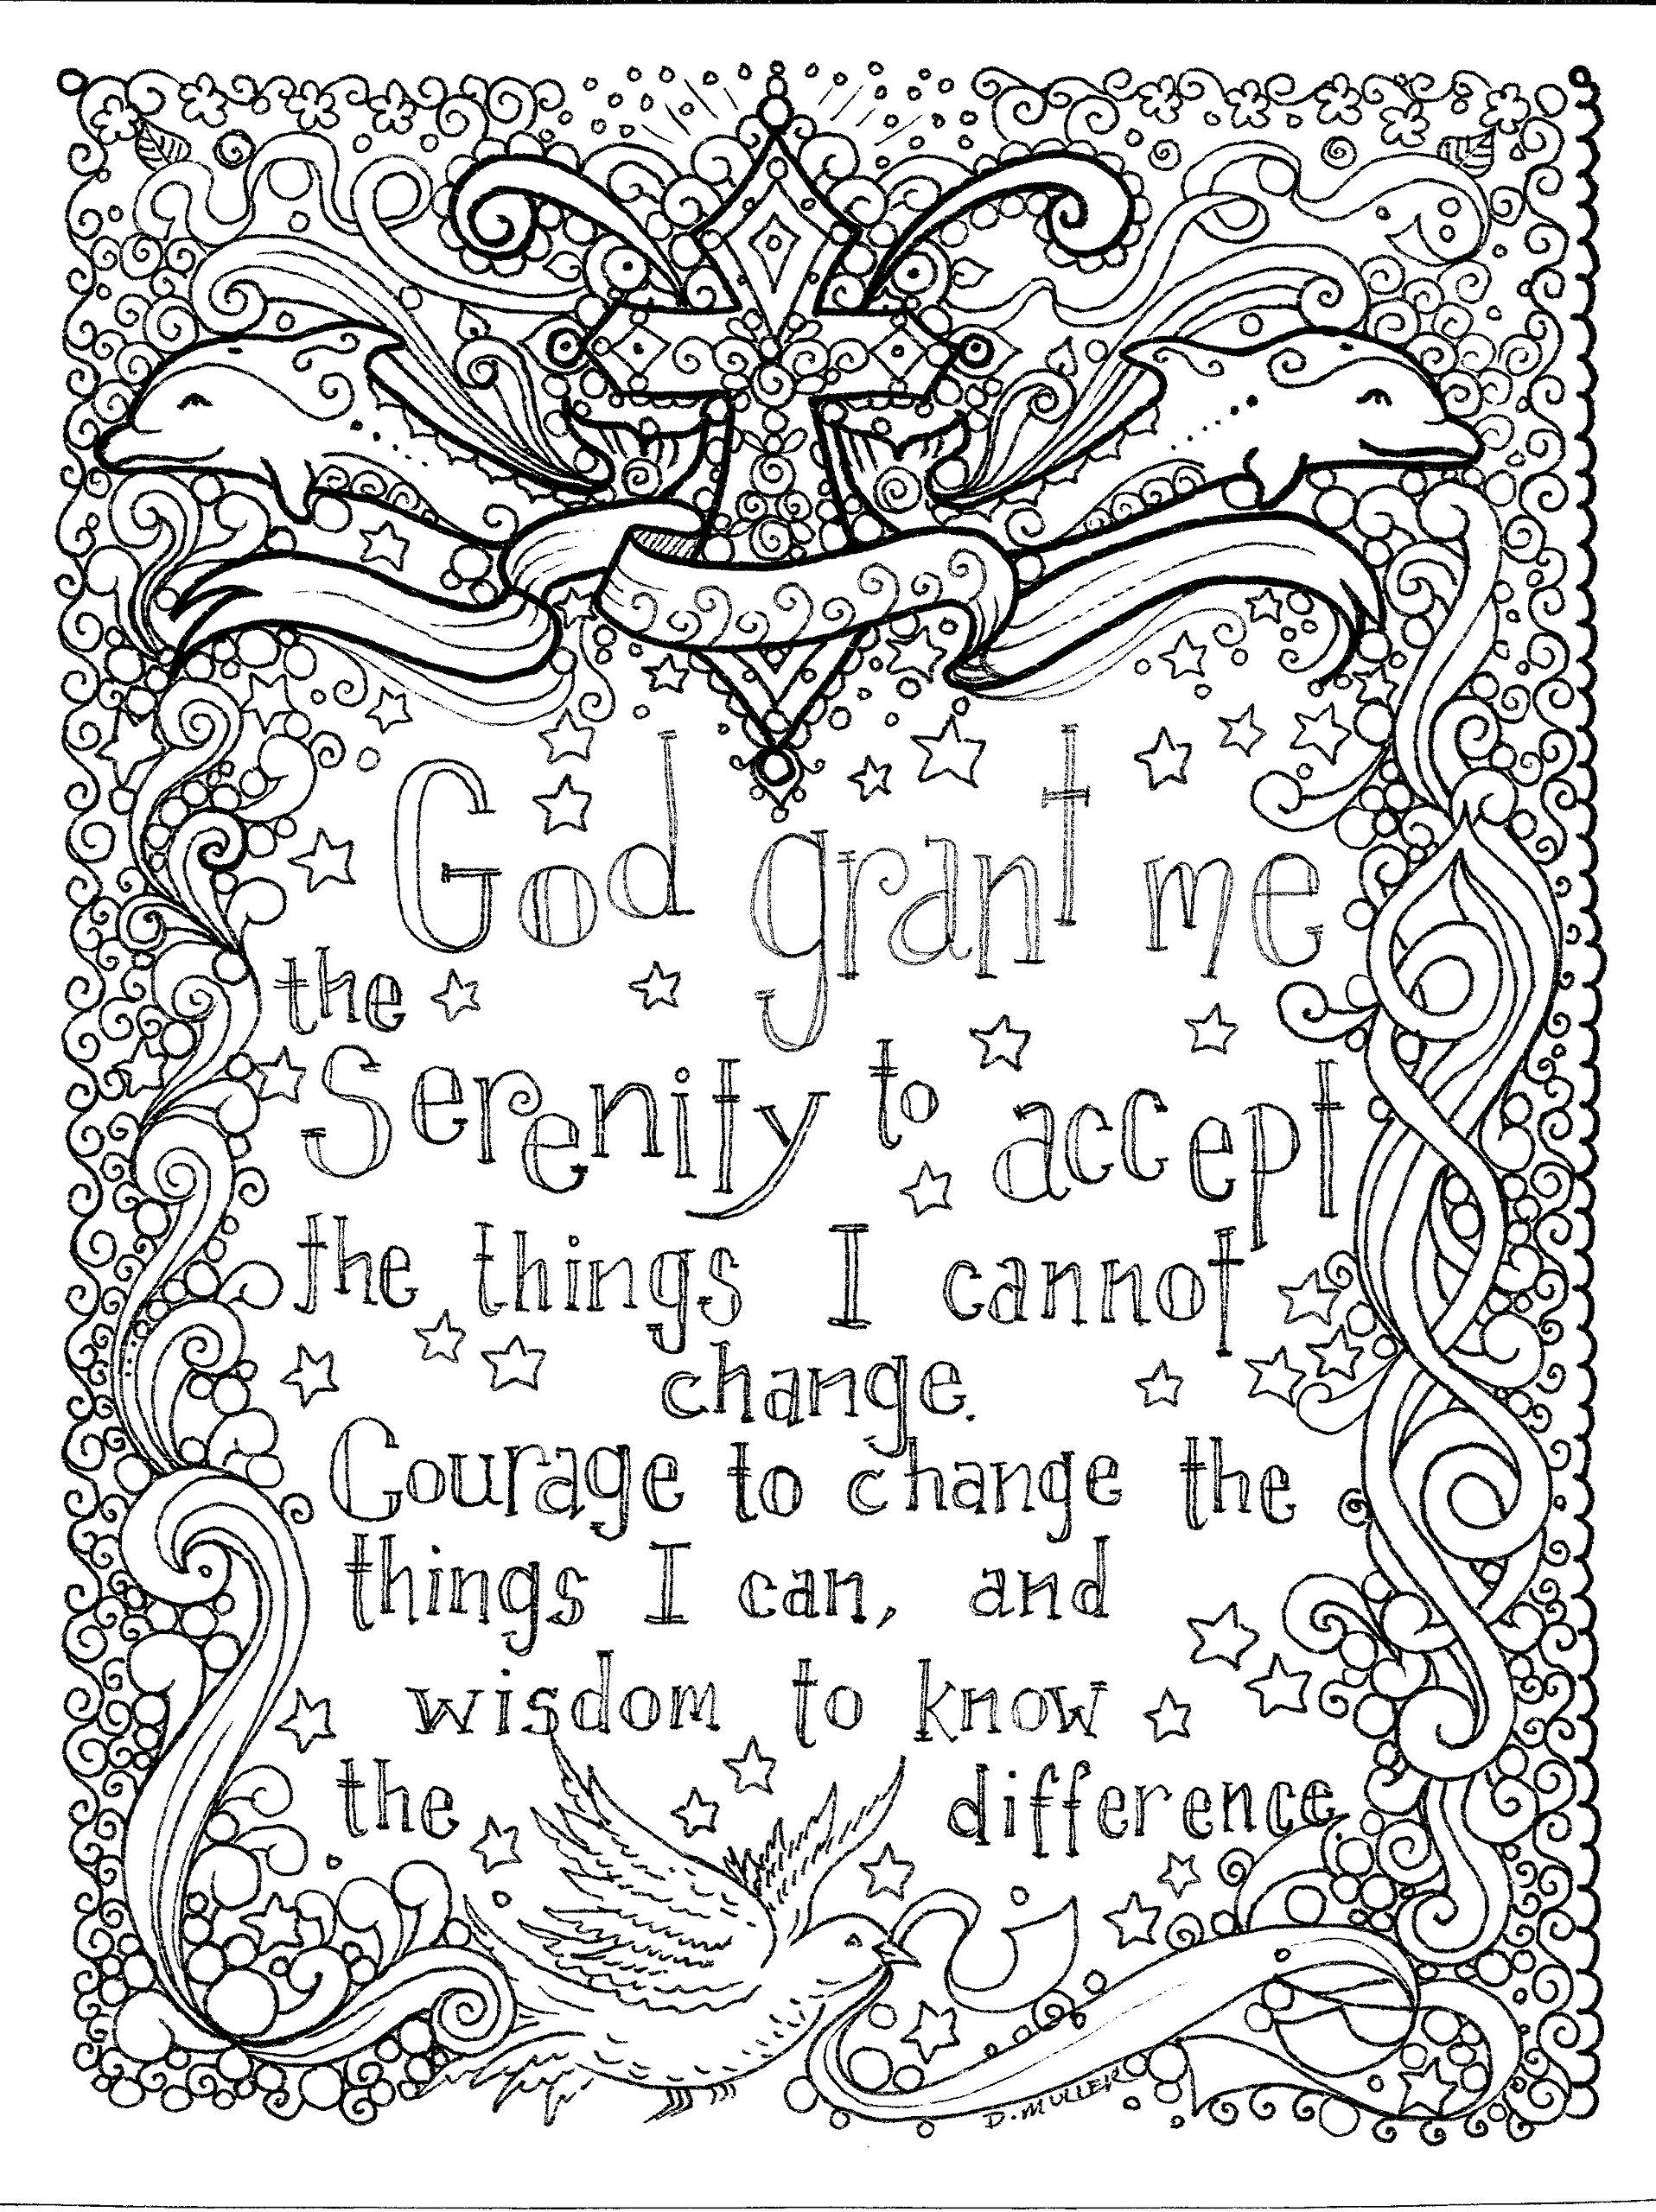 Prayers To Color An Adult Coloring Book: Deborah Muller/chubby pertaining to August Printable Images To Color